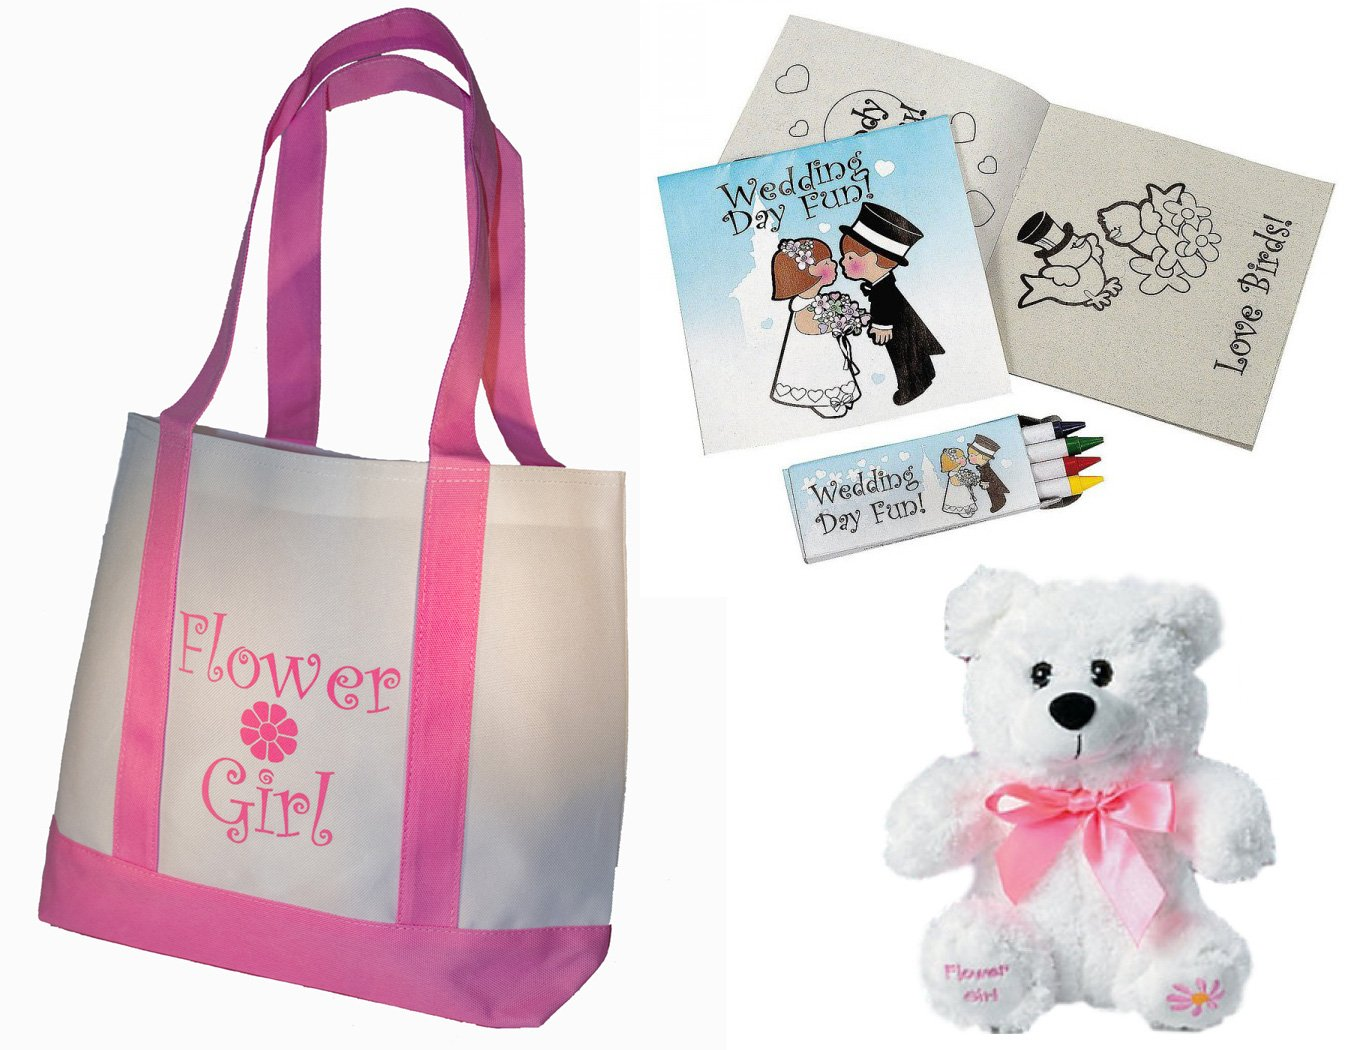 Best Flower Girl Gifts Set: Tote Bag, Teddy Bear, Wedding Day Kids Activity kits